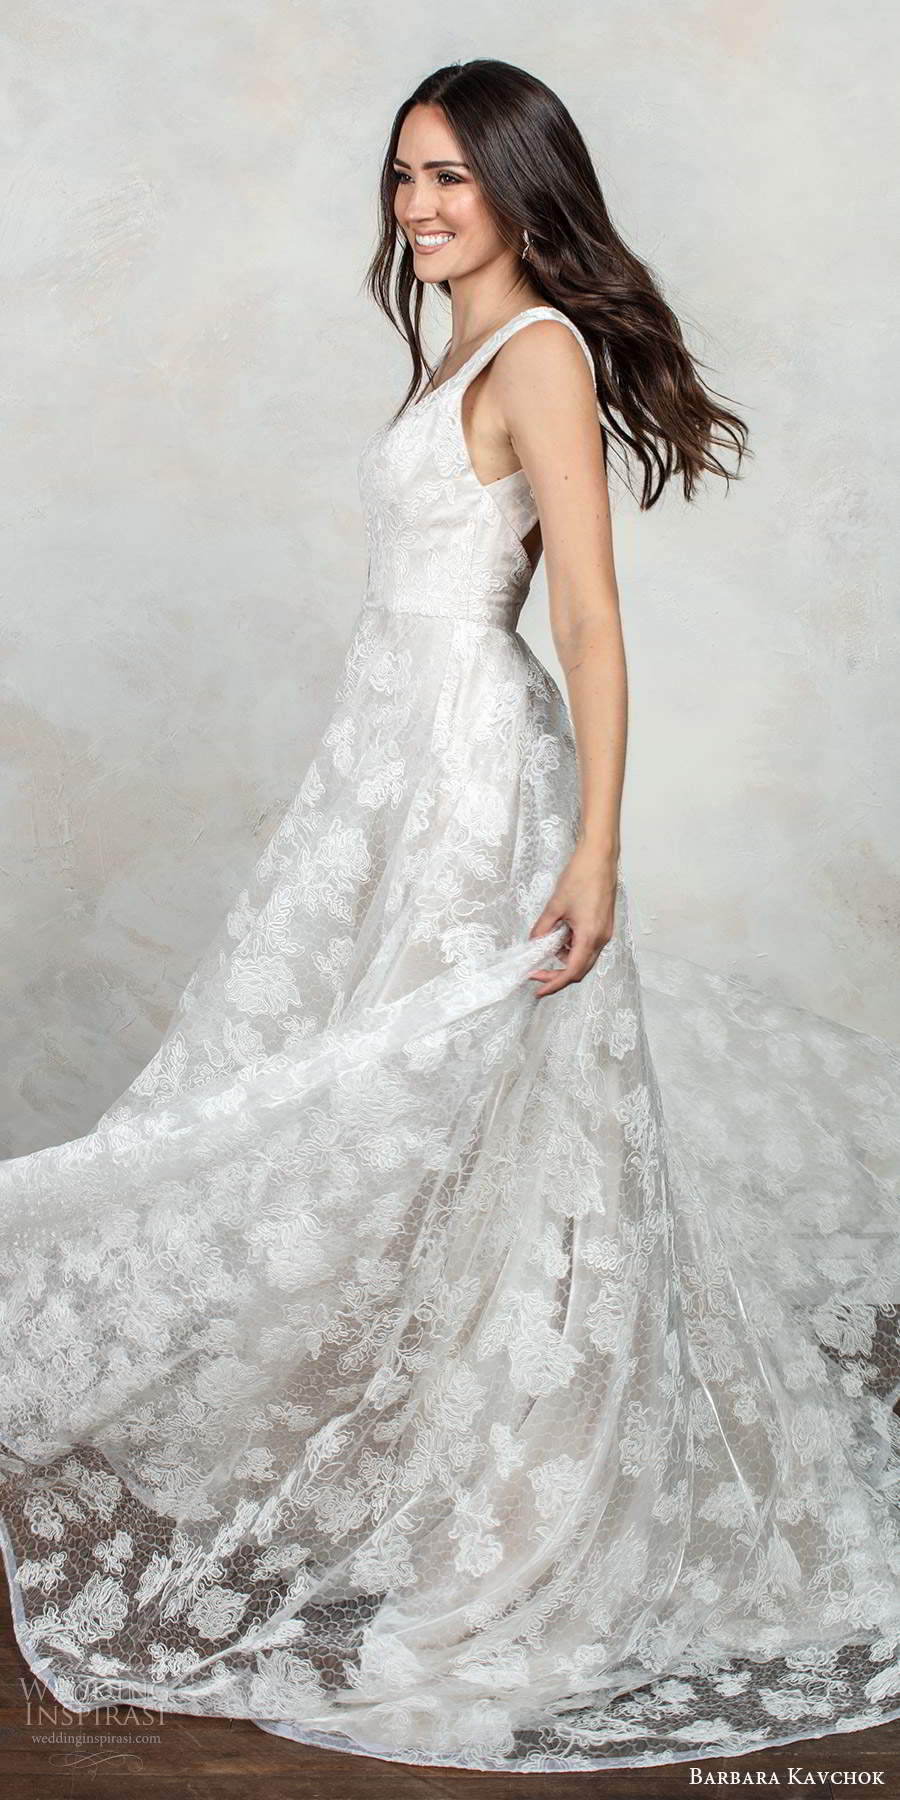 barbara kavchok fall 2020 bridal sleeveless thick straps plunging v neckline fully embellished lace a line ball gown wedding dress low back chapel train  (4) sv